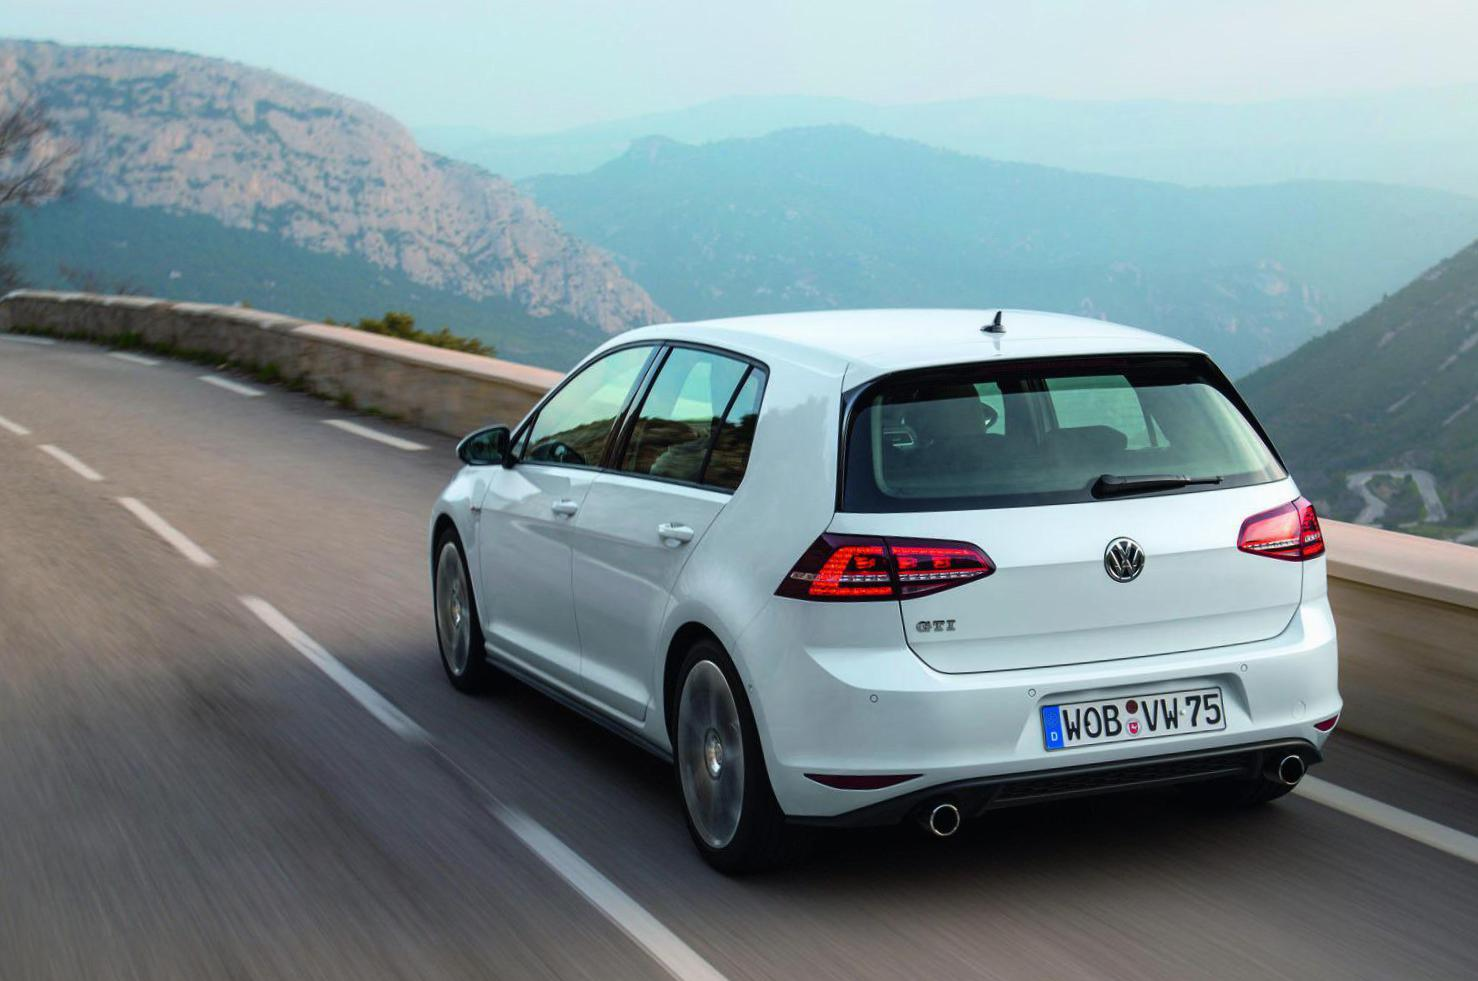 Golf GTI Volkswagen how mach 2014